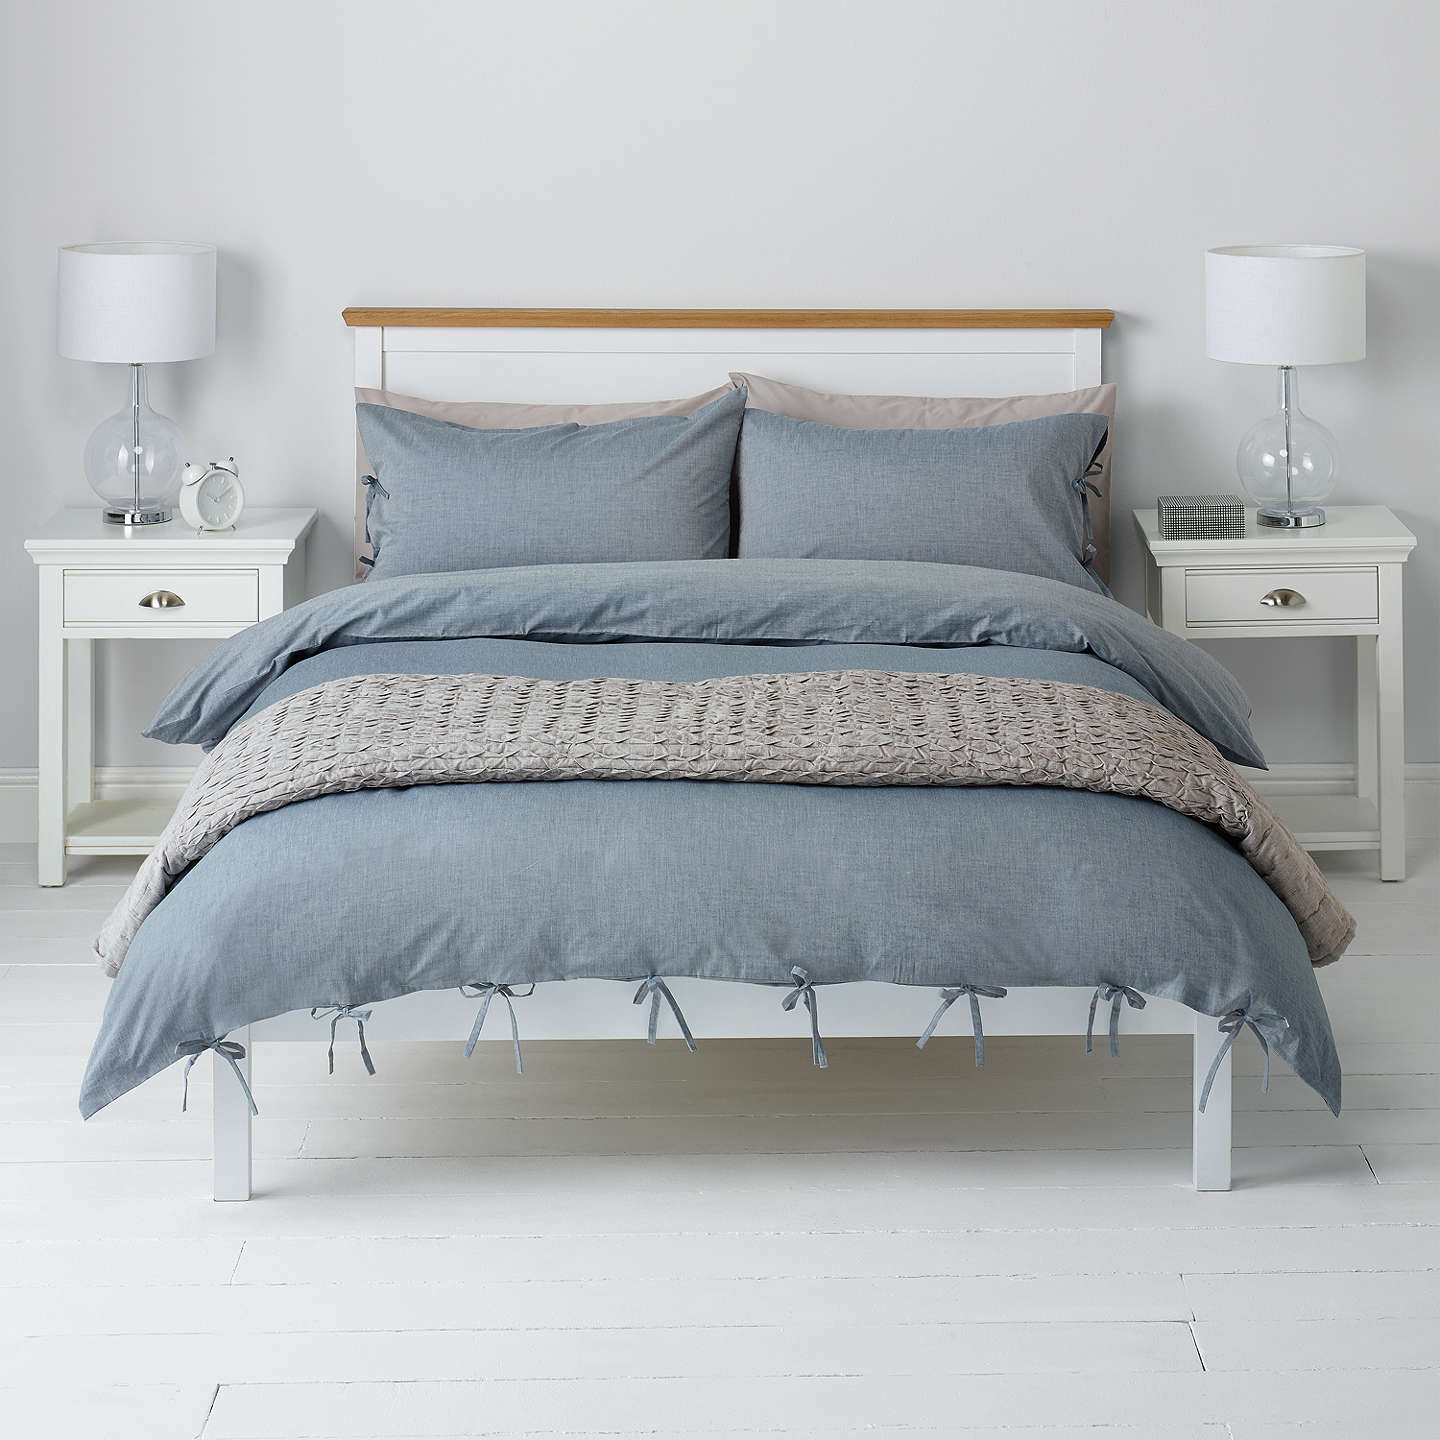 color modern chambray cover home natural feel style casual set duvet bedding look solid washed gray soft amazon queen com cotton relaxed dp wrinkled cool